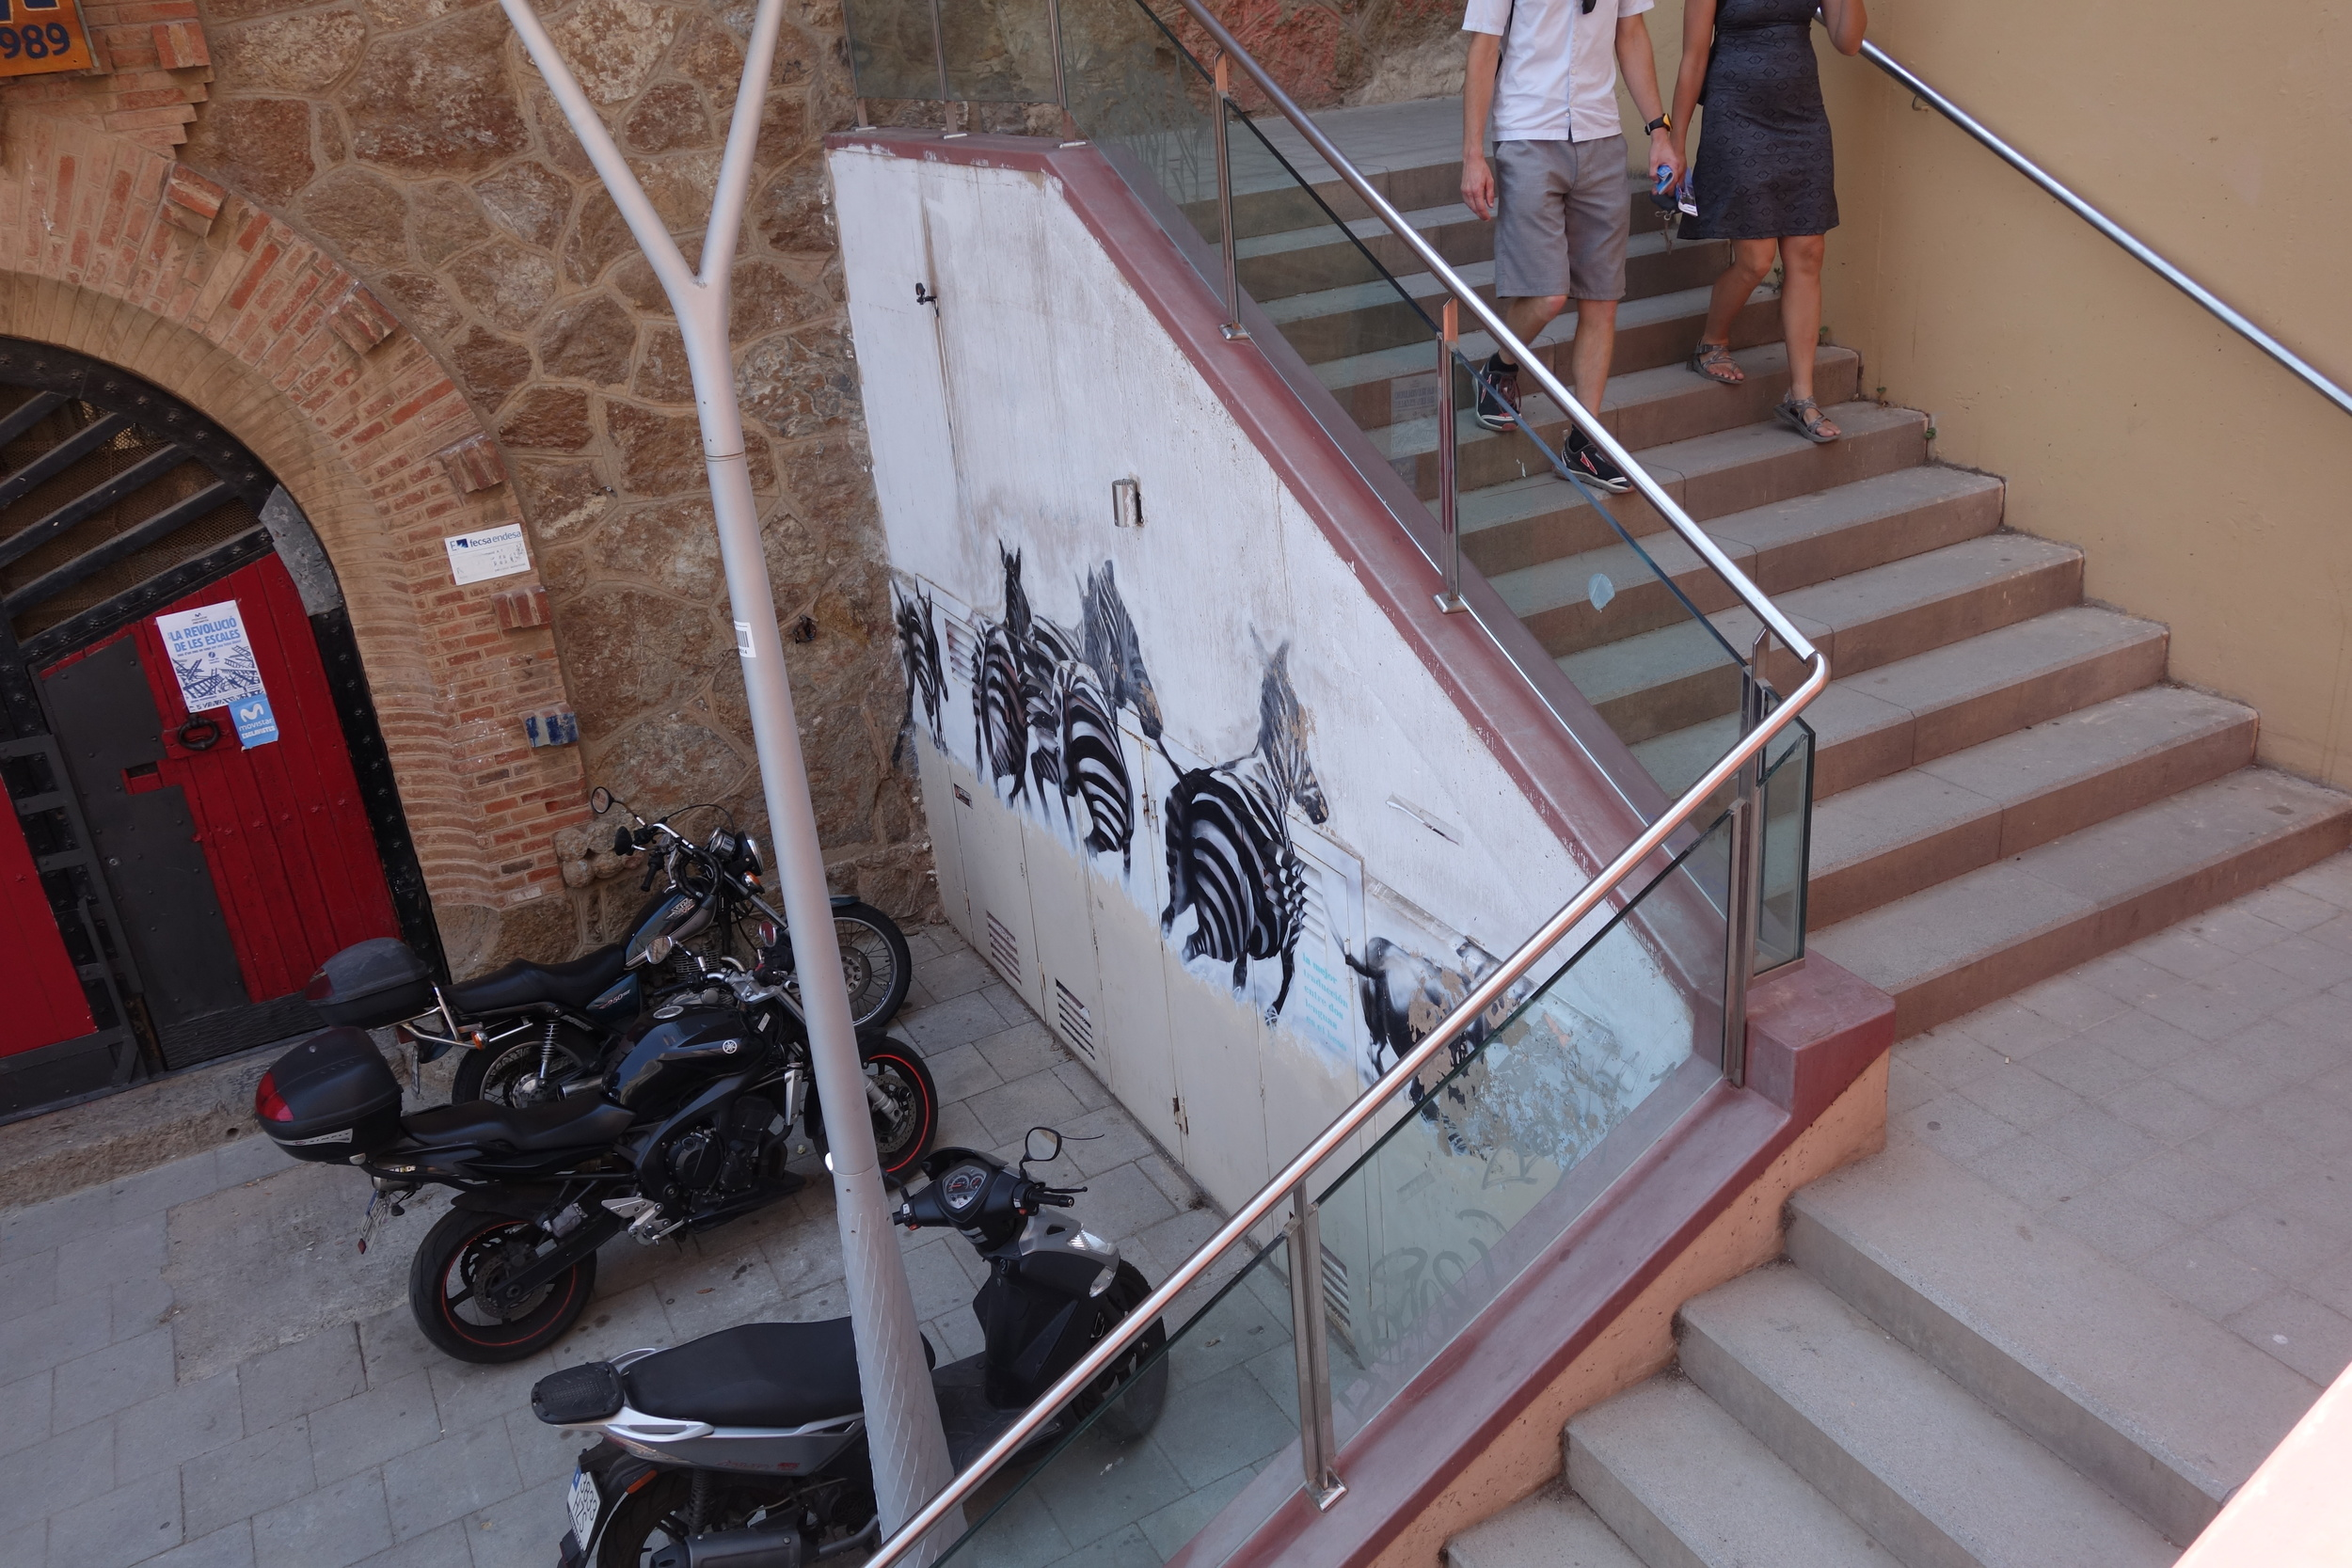 I liked this mural on the hike up to Park Guell